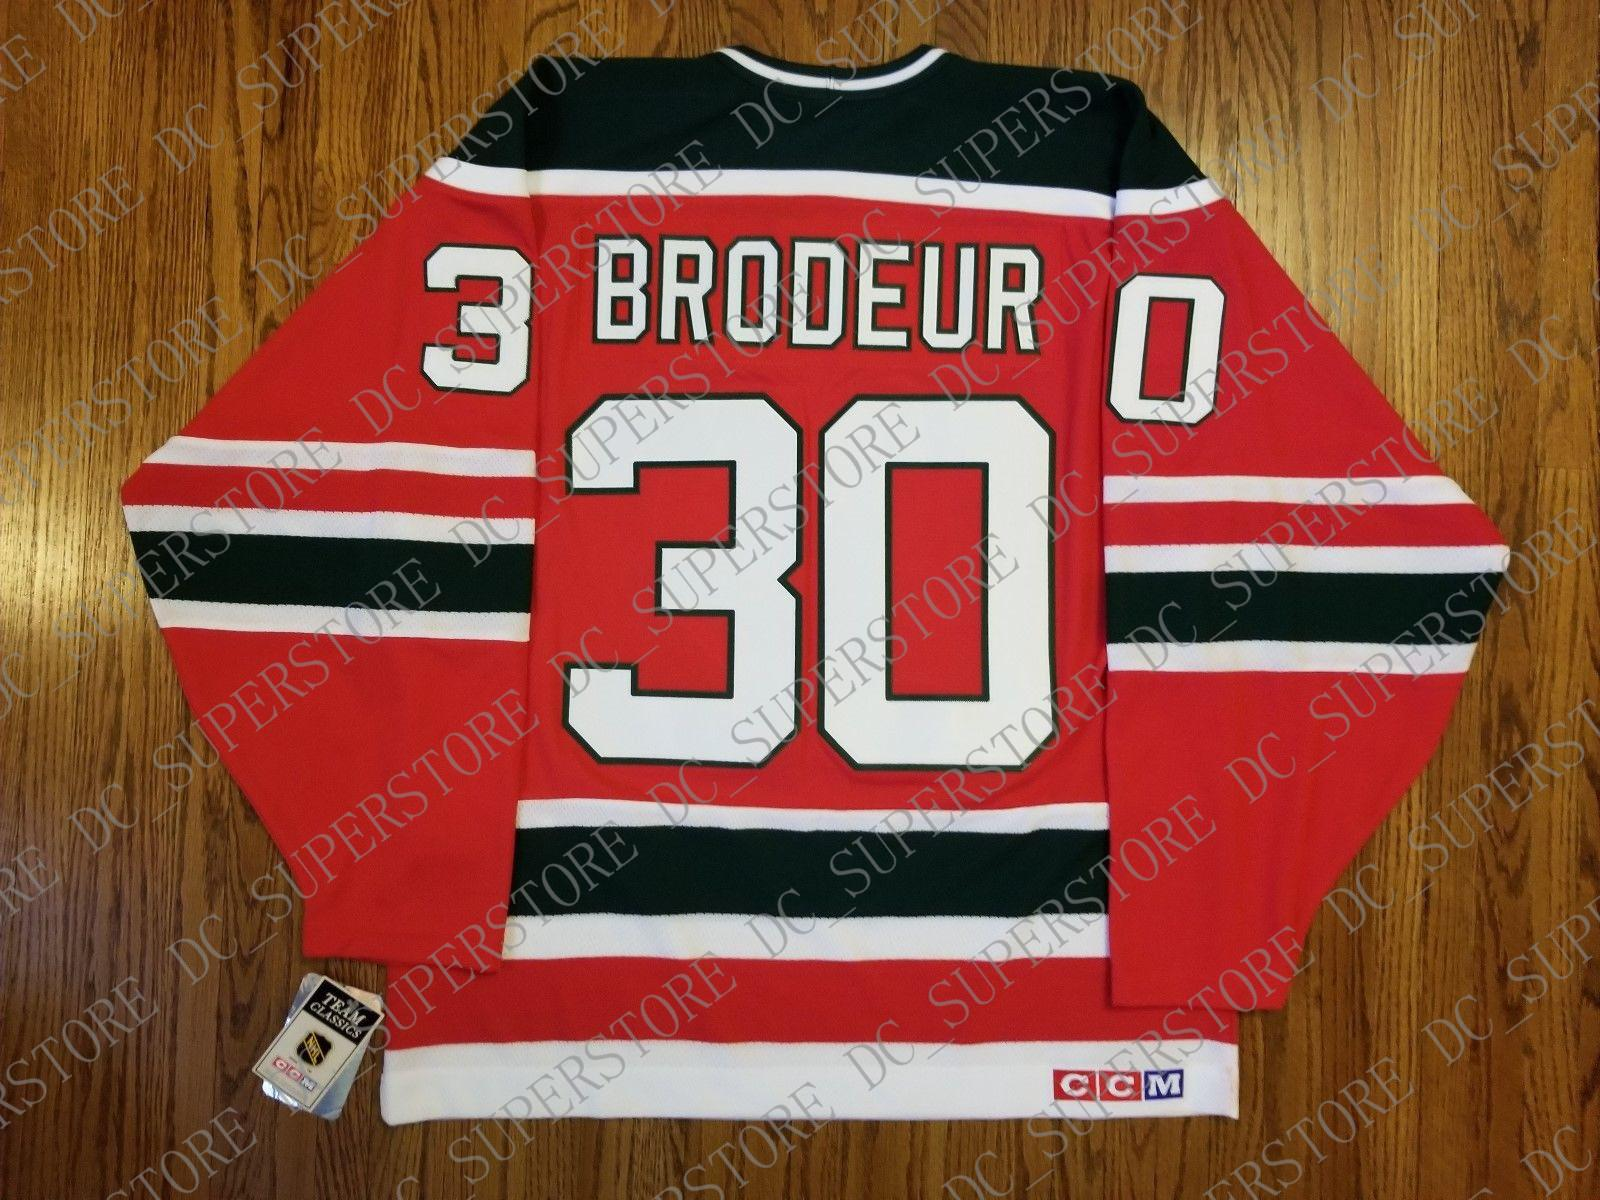 e45abf22c2b 2019 Cheap Custom Marty Brodeur Vintage New Jersey Devils CCM Jersey  Christmas Tree Green Stitched Retro Hockey Jersey XS 5XL From  Dc superstore